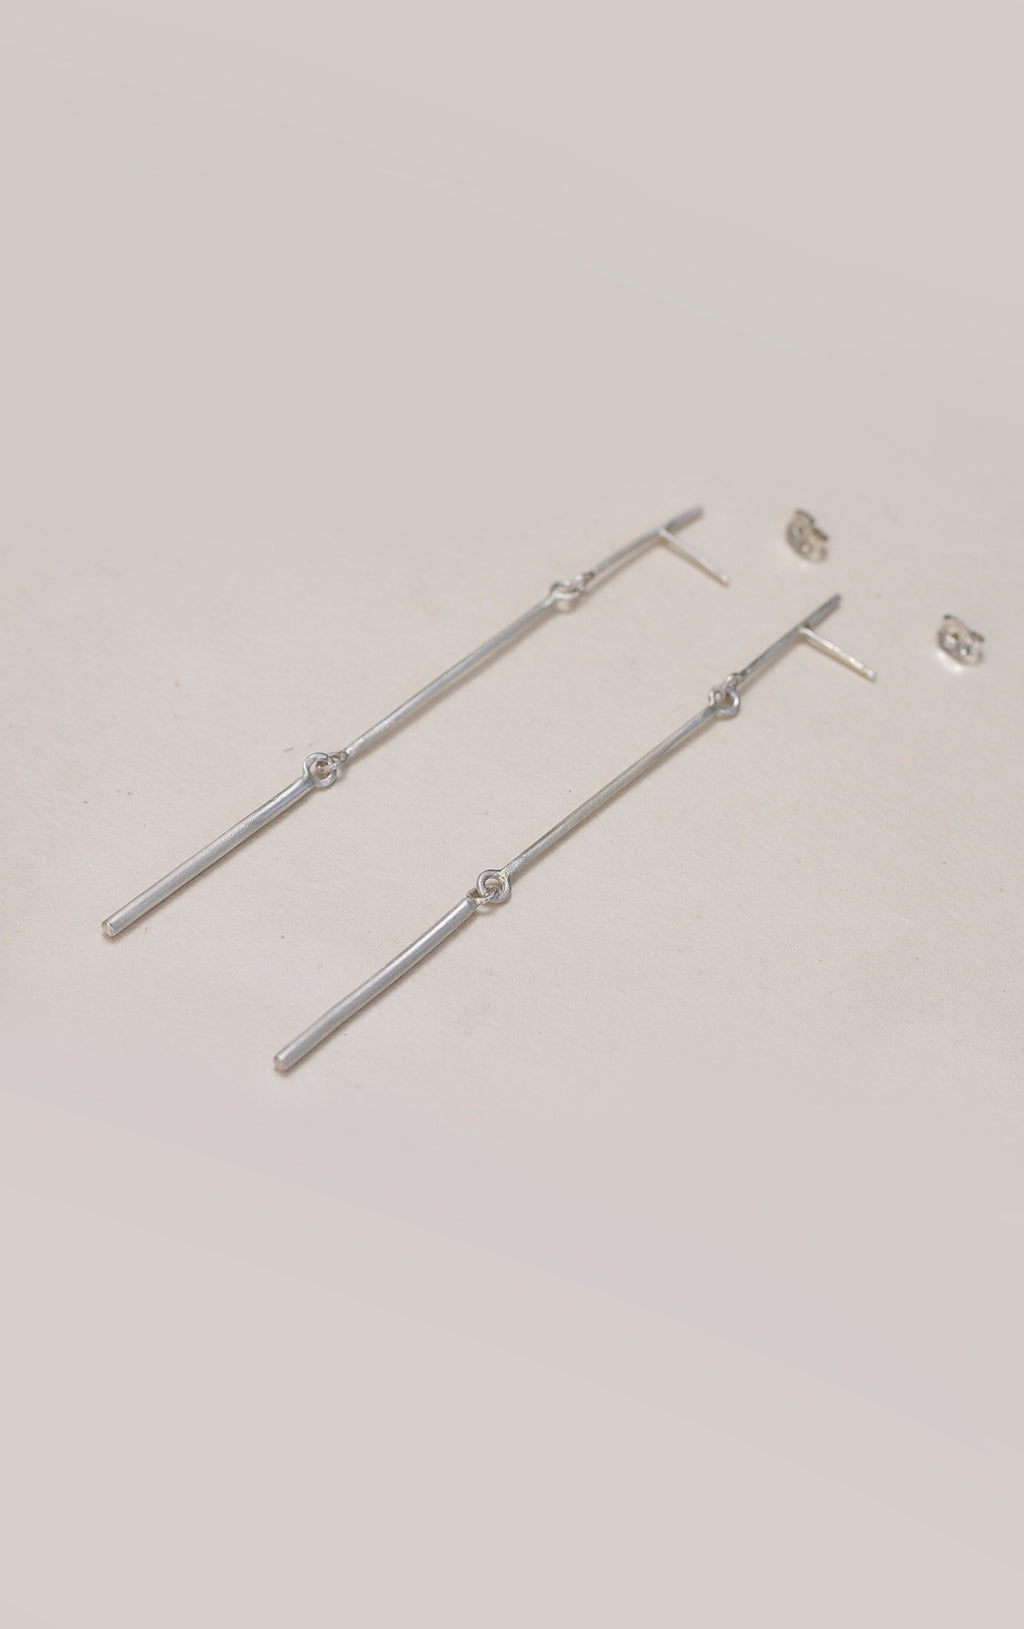 Long Bar stud earrings // Sterling silver